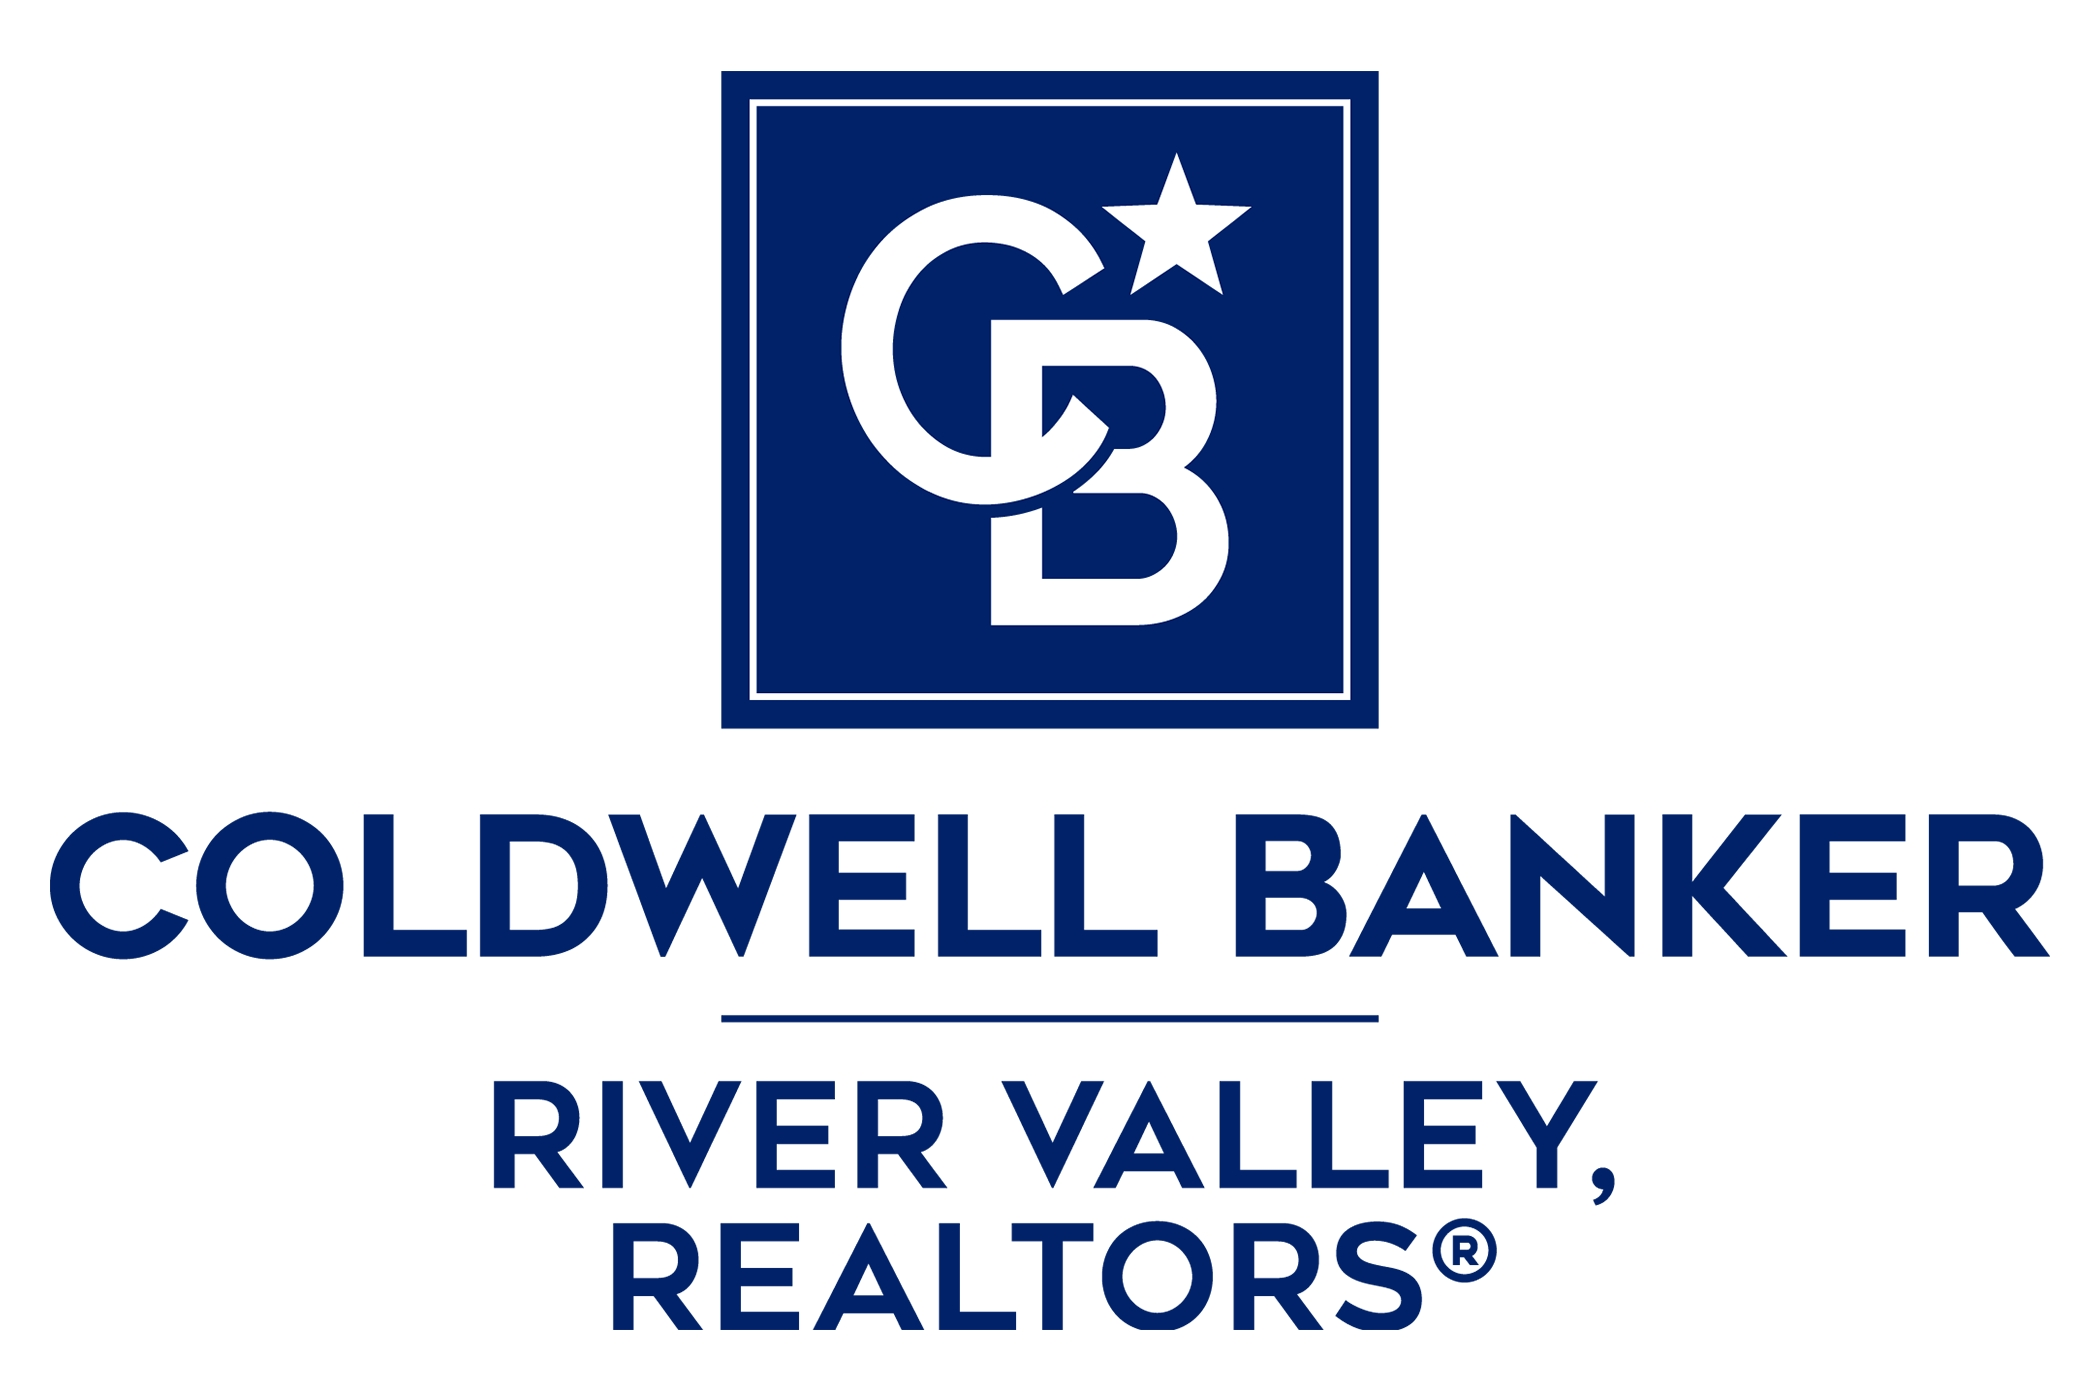 Jillian Hugo - Coldwell Banker River Valley, REALTORS Logo